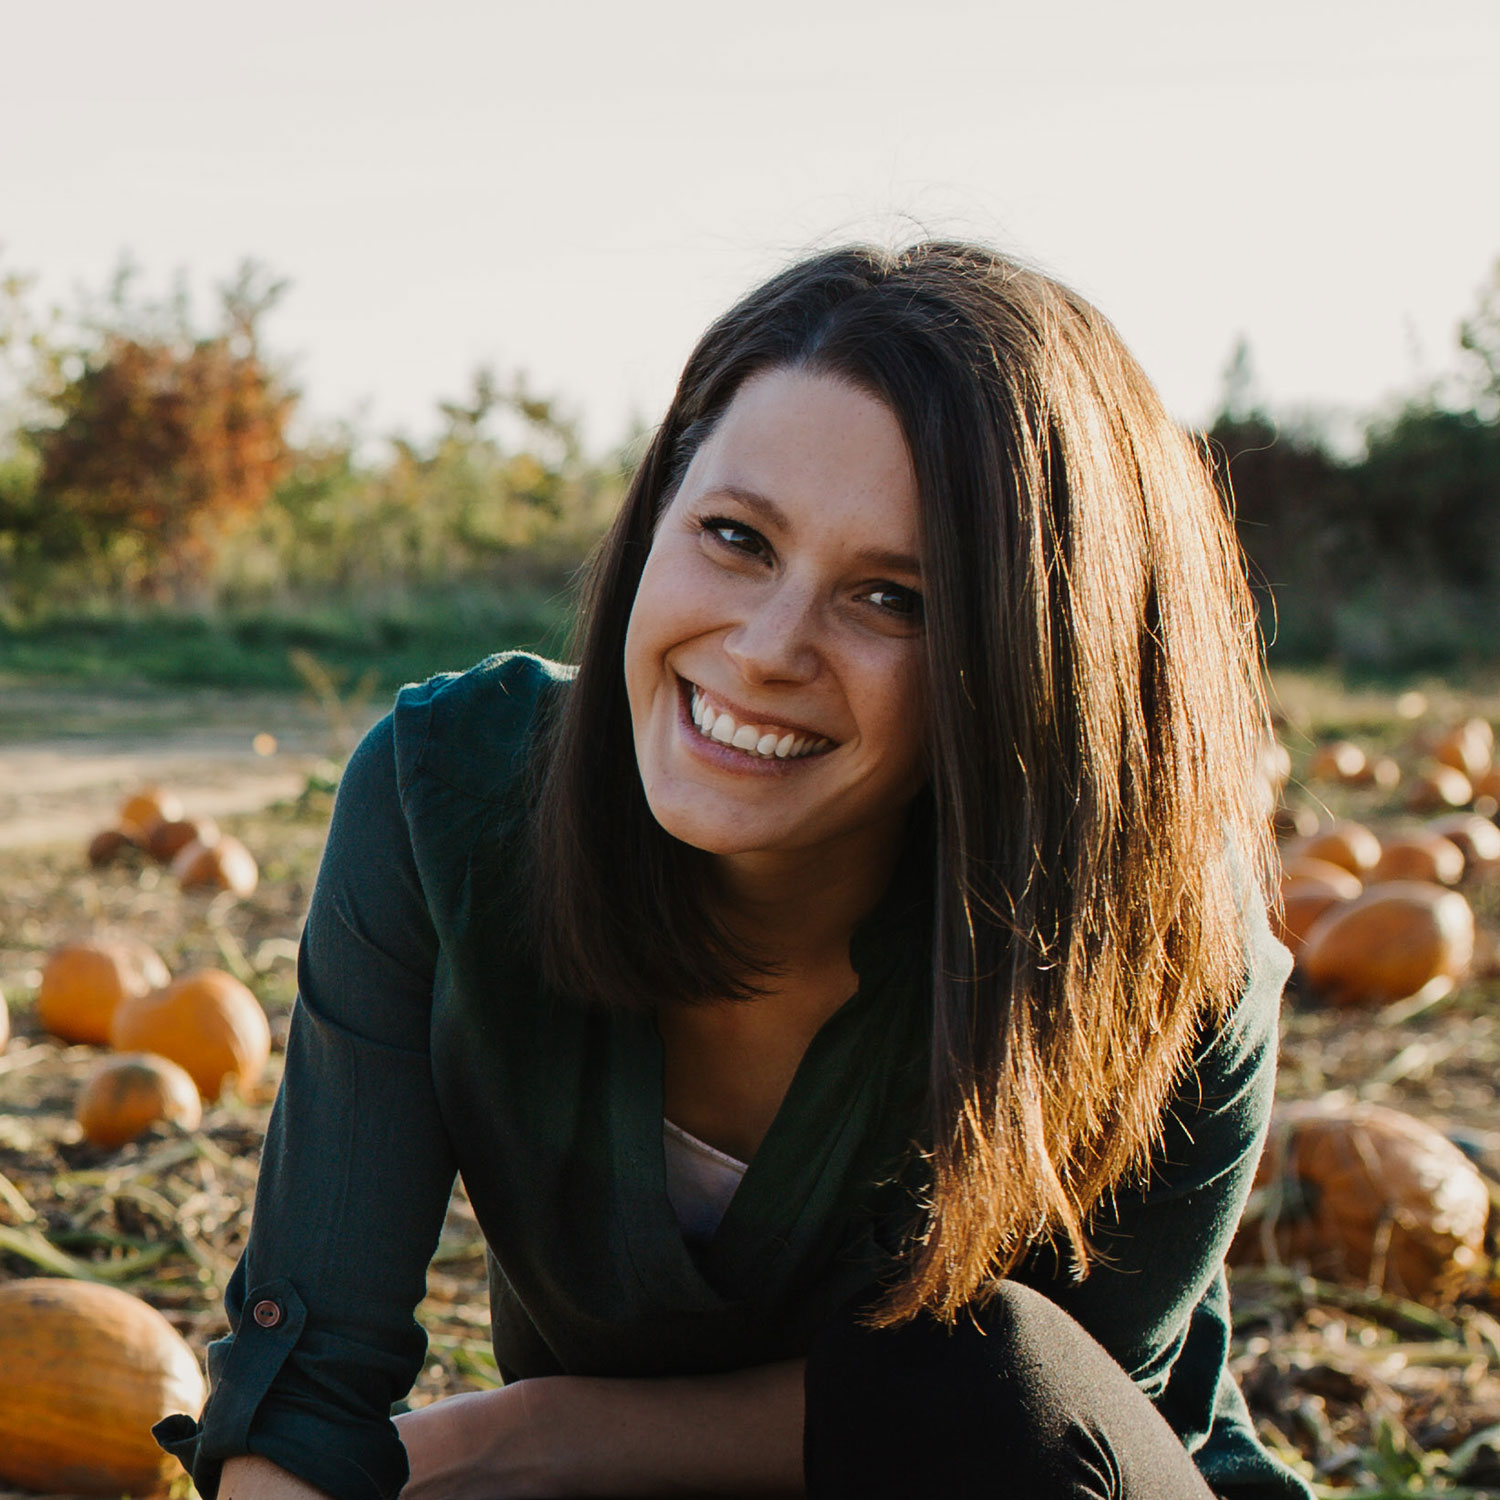 Lindsey Tierney - Hagerstown, MDLindsey is the linchpin—the other half of Tierney Studio, Crayligraphy and of course, Colin. She makes all things work through organizing events, planning workshops and managing the day-to-day responsibilities to keep Crayligraphy alive and well!Instagram